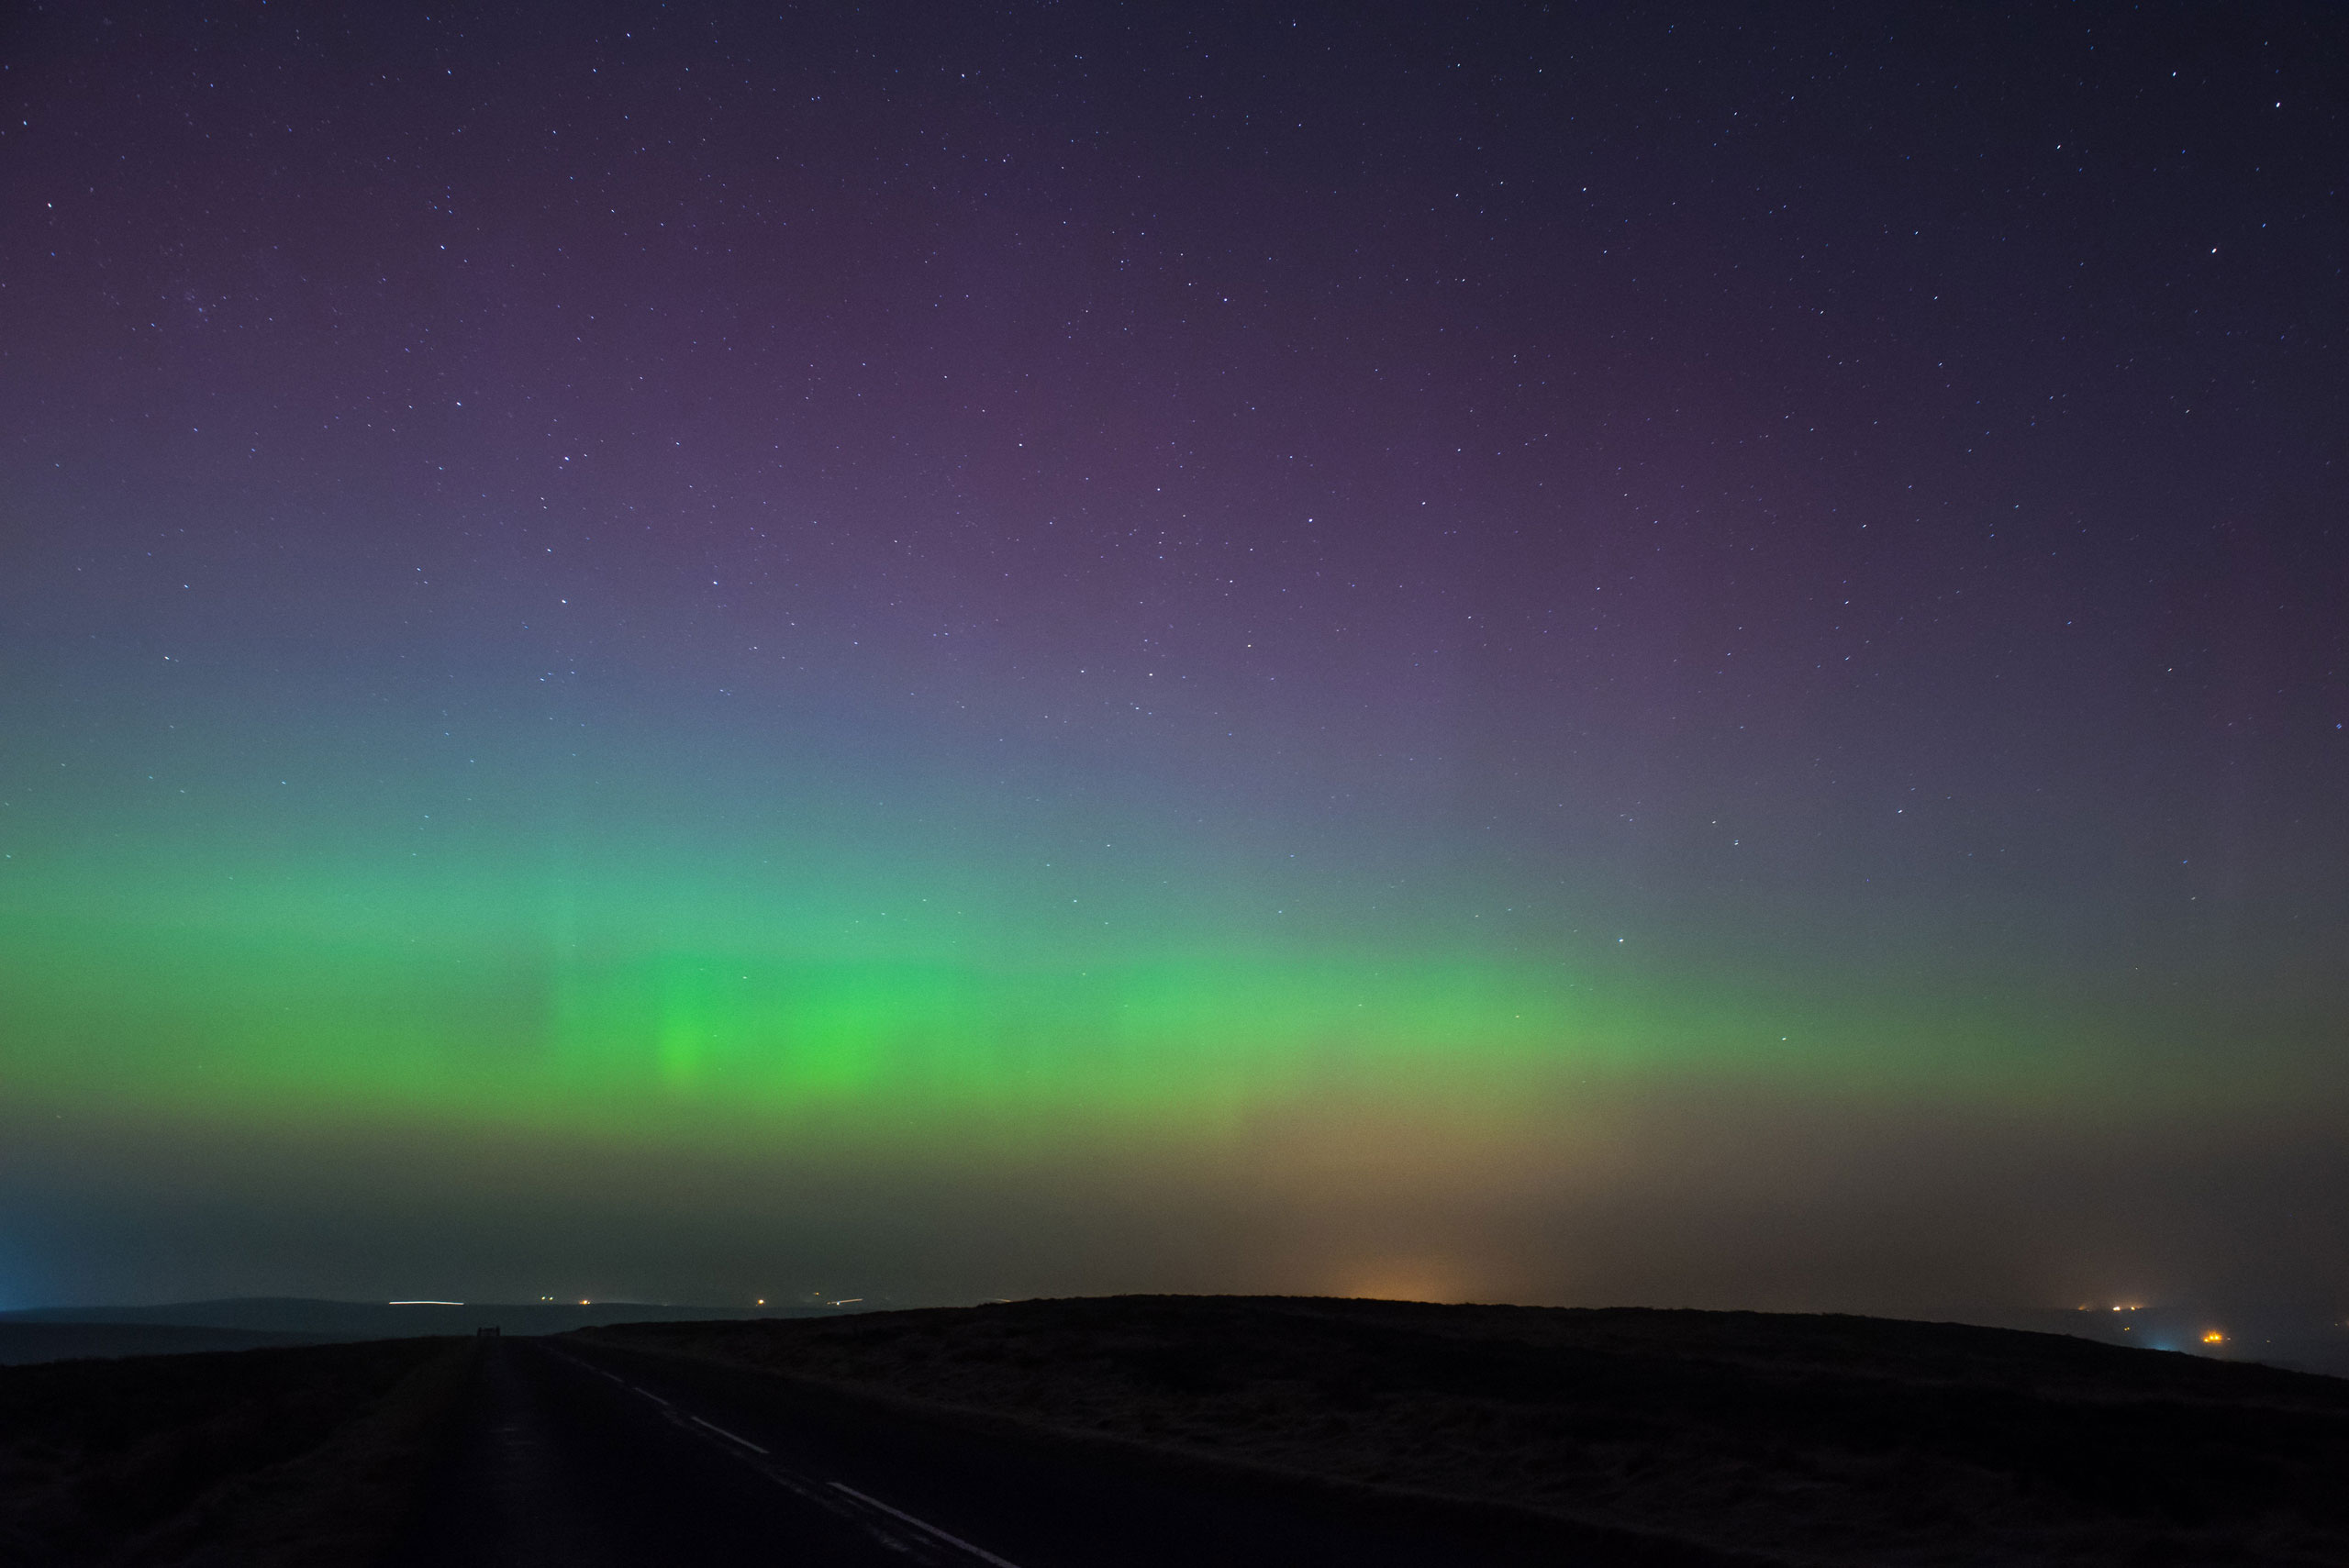 The Northern Lights above the Staffordshire moorlands in England on March 17, 2015.